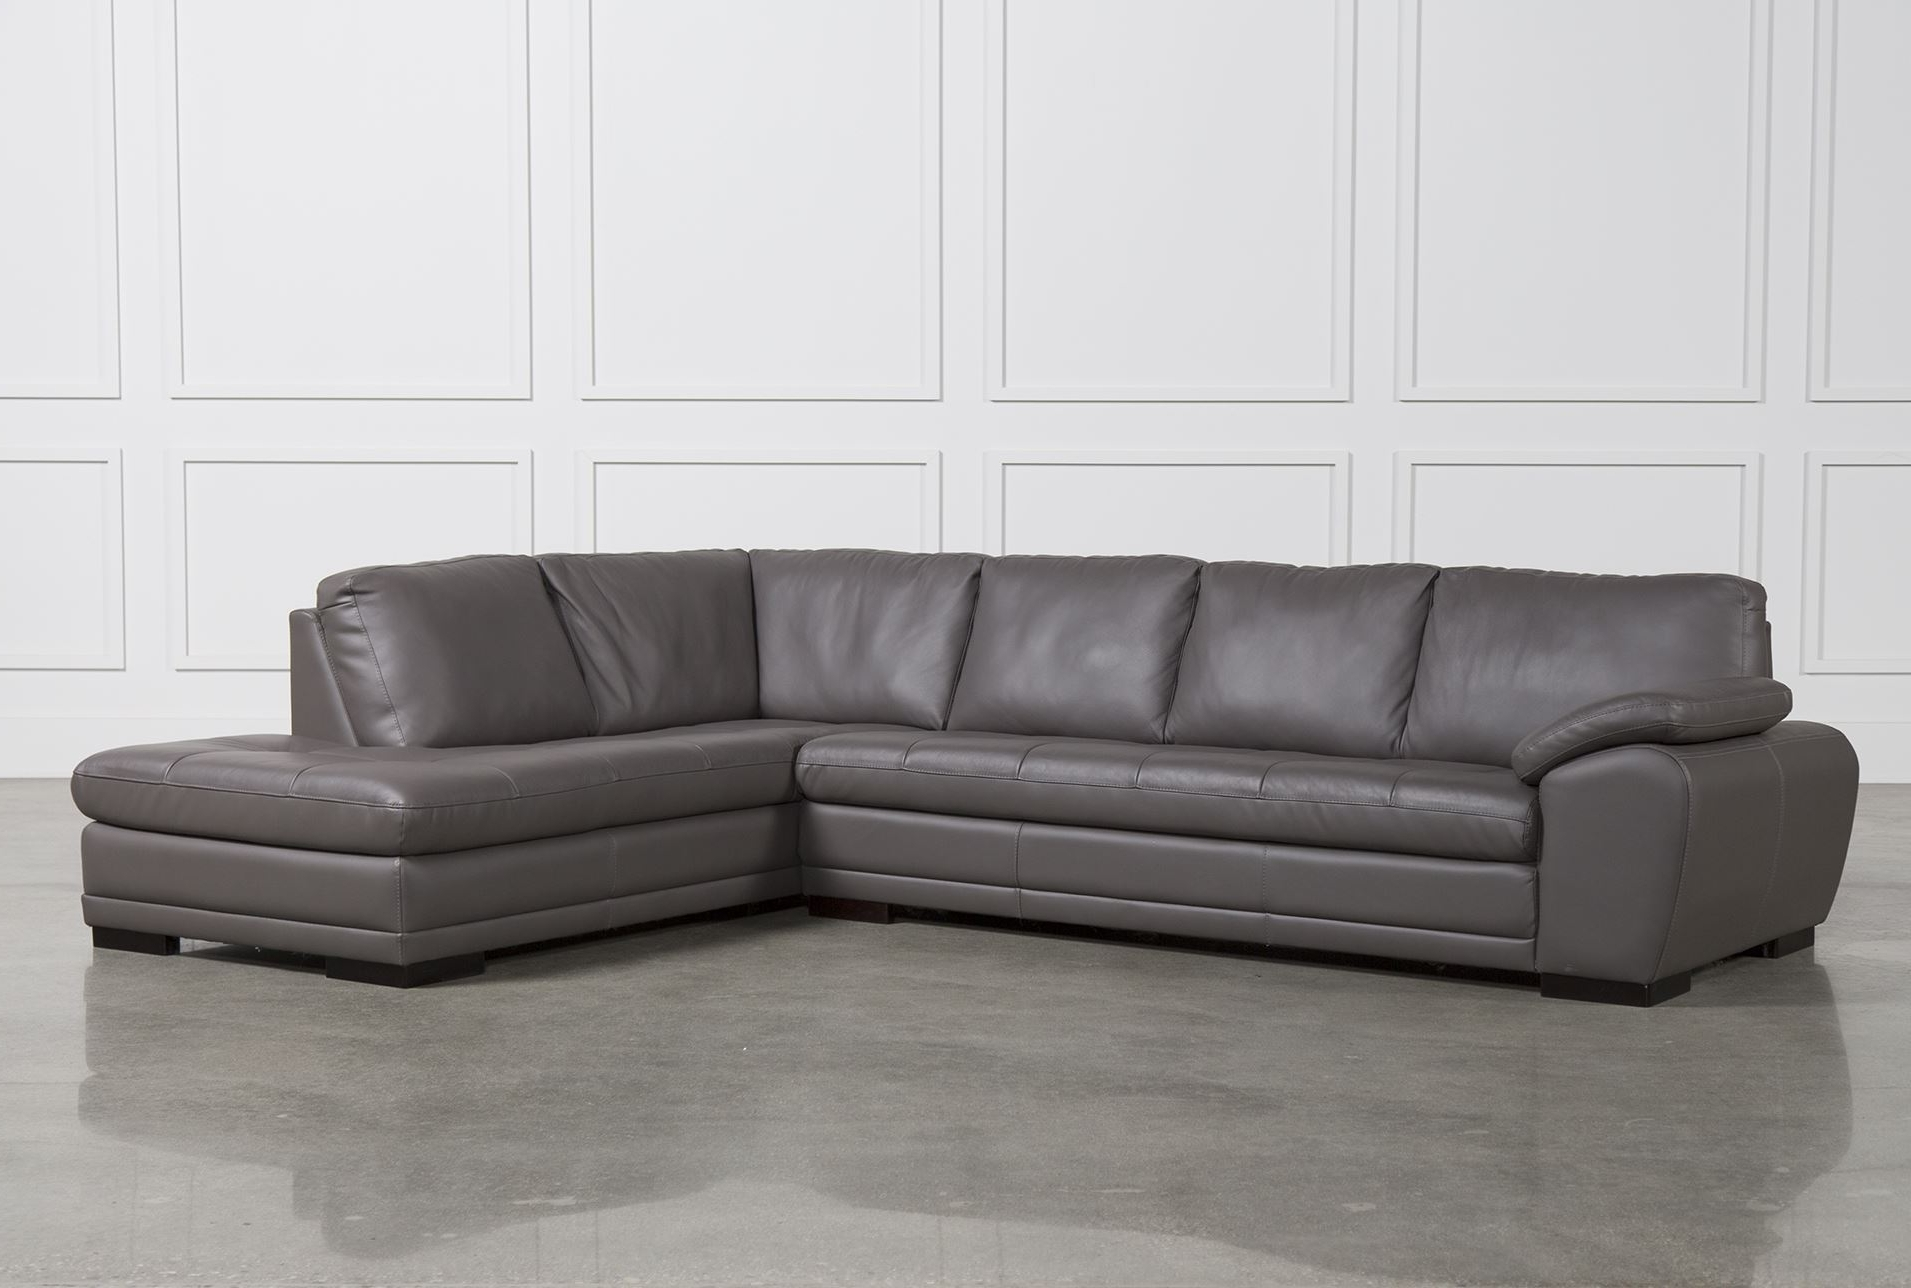 Popular Sectional Sofa Design: Unique Sectional Leather Sofas Gray Leather With Leather L Shaped Sectional Sofas (View 20 of 20)